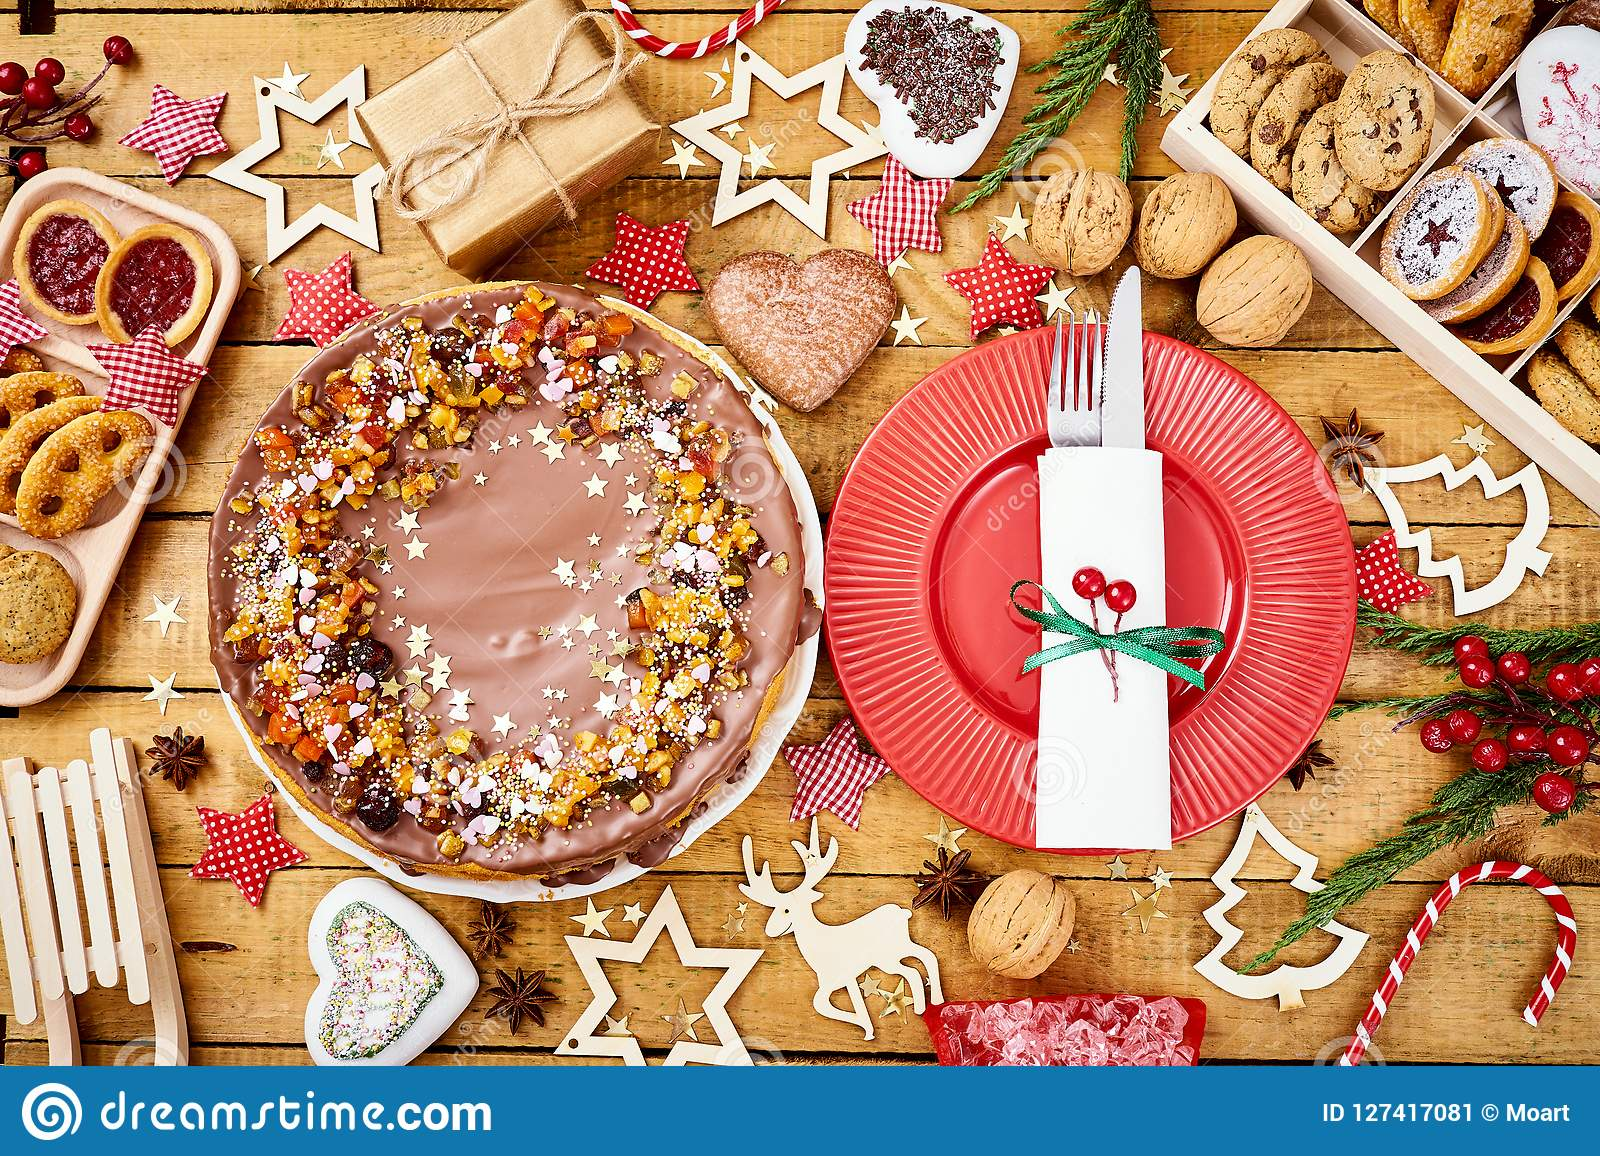 Wooden table with delicious Christmas cake decorations and different cookies